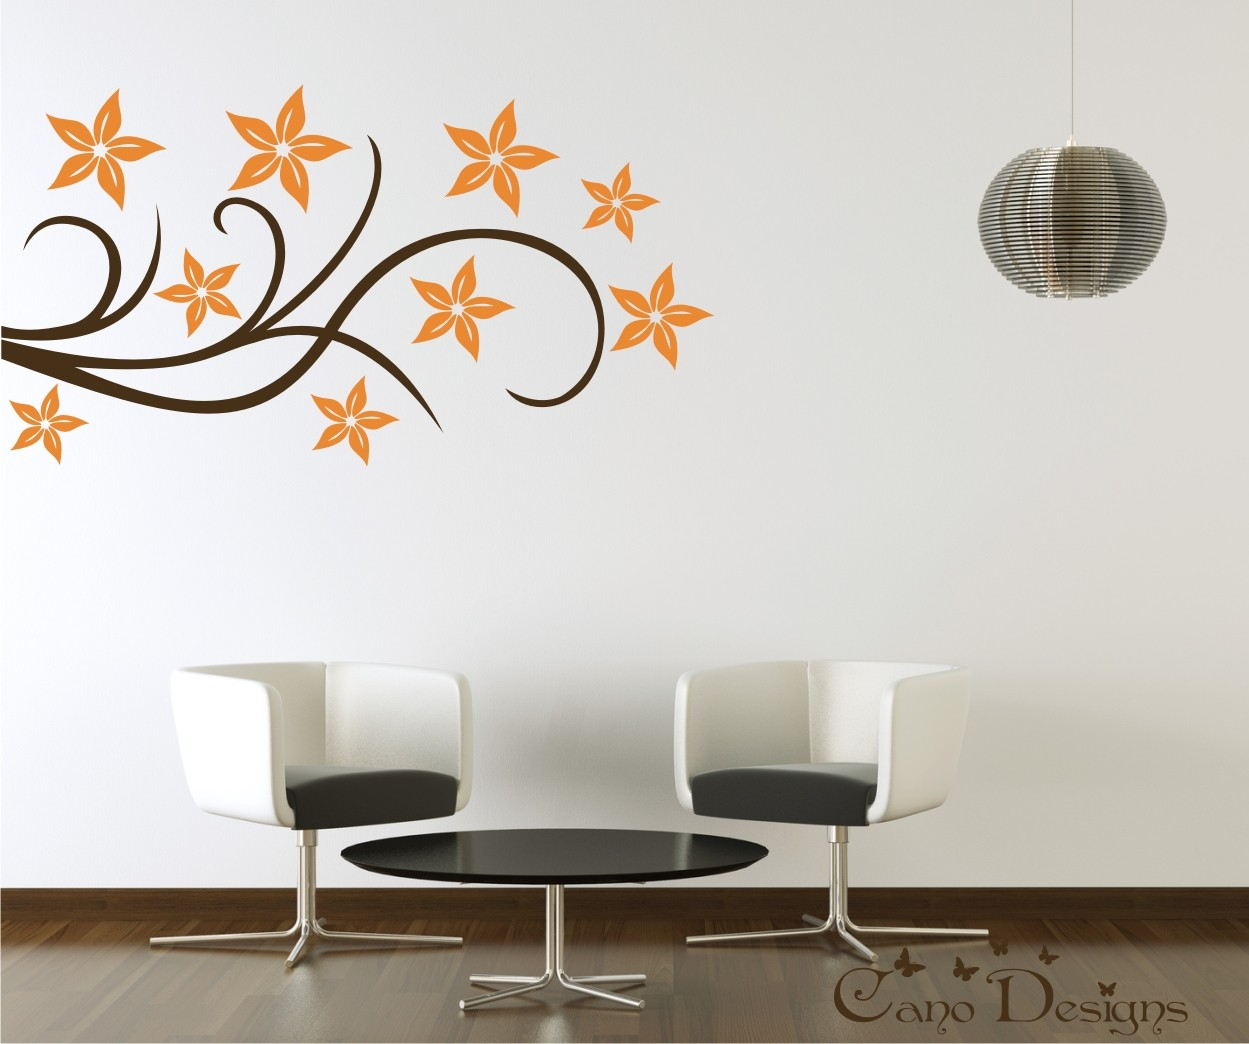 Design Wallpaper Dinding Slubne Sukniefo